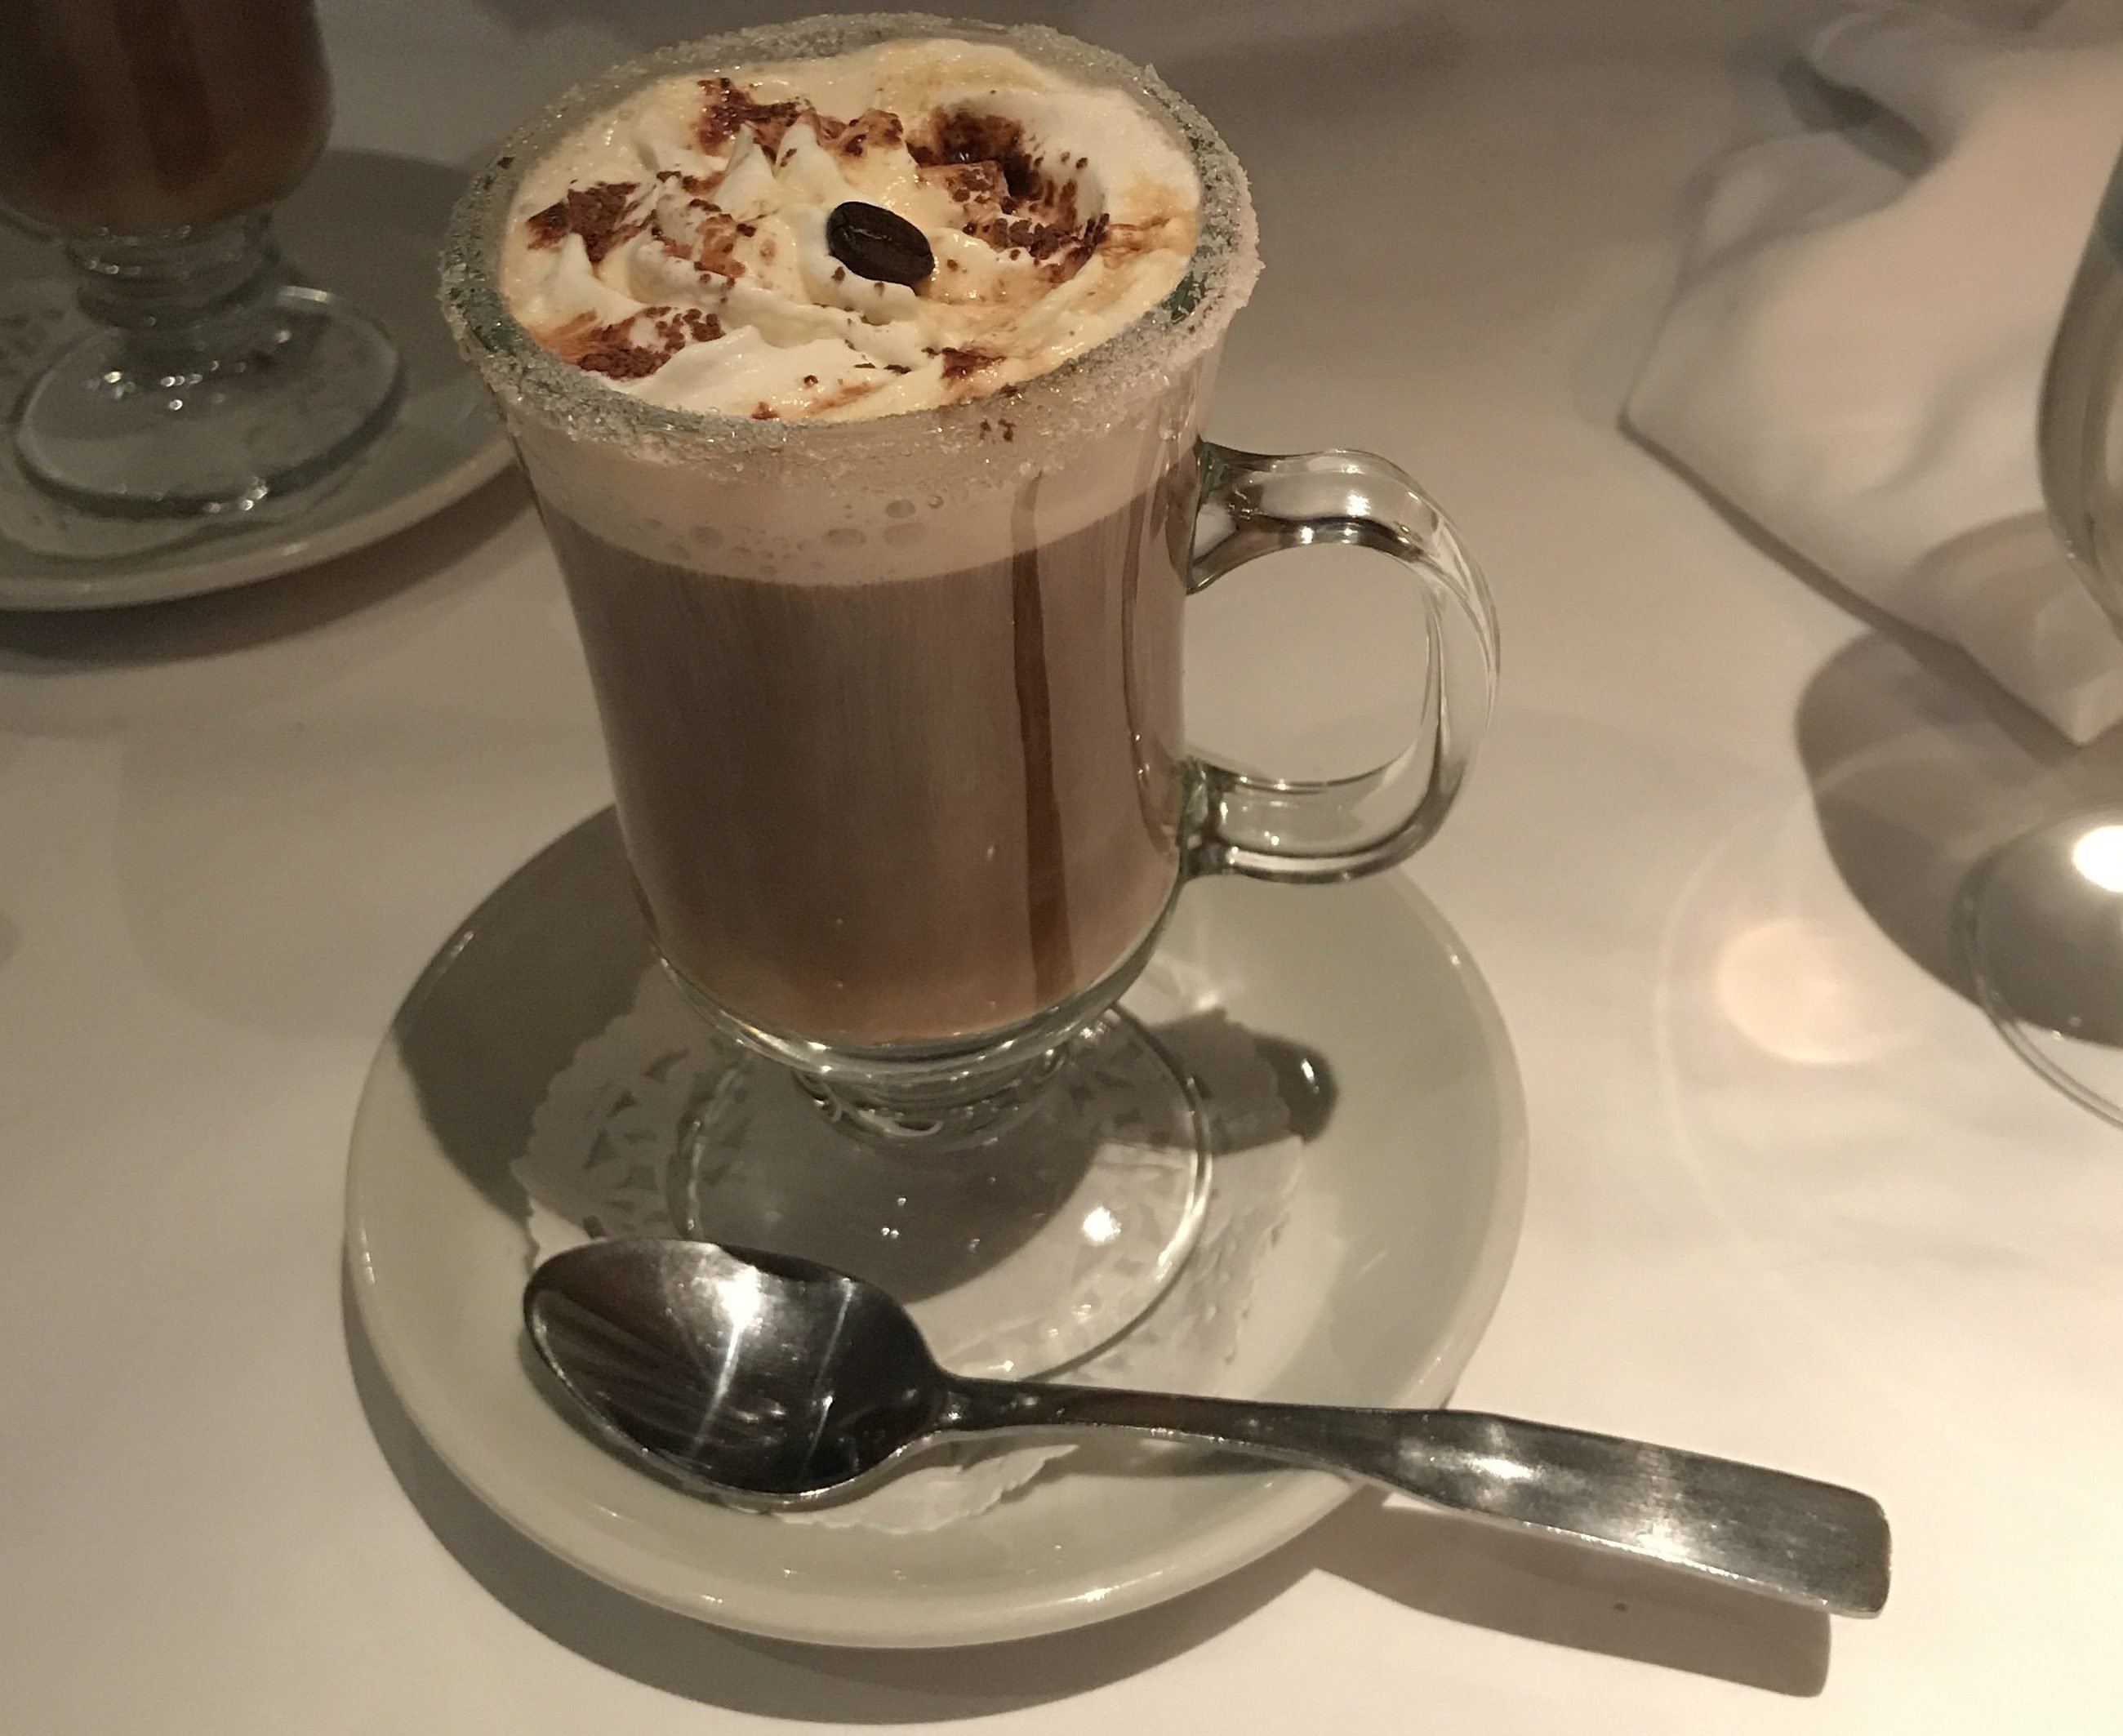 The Spanish Coffee made by a bartender at Ciccio Cafe in Quebec City, Canada.